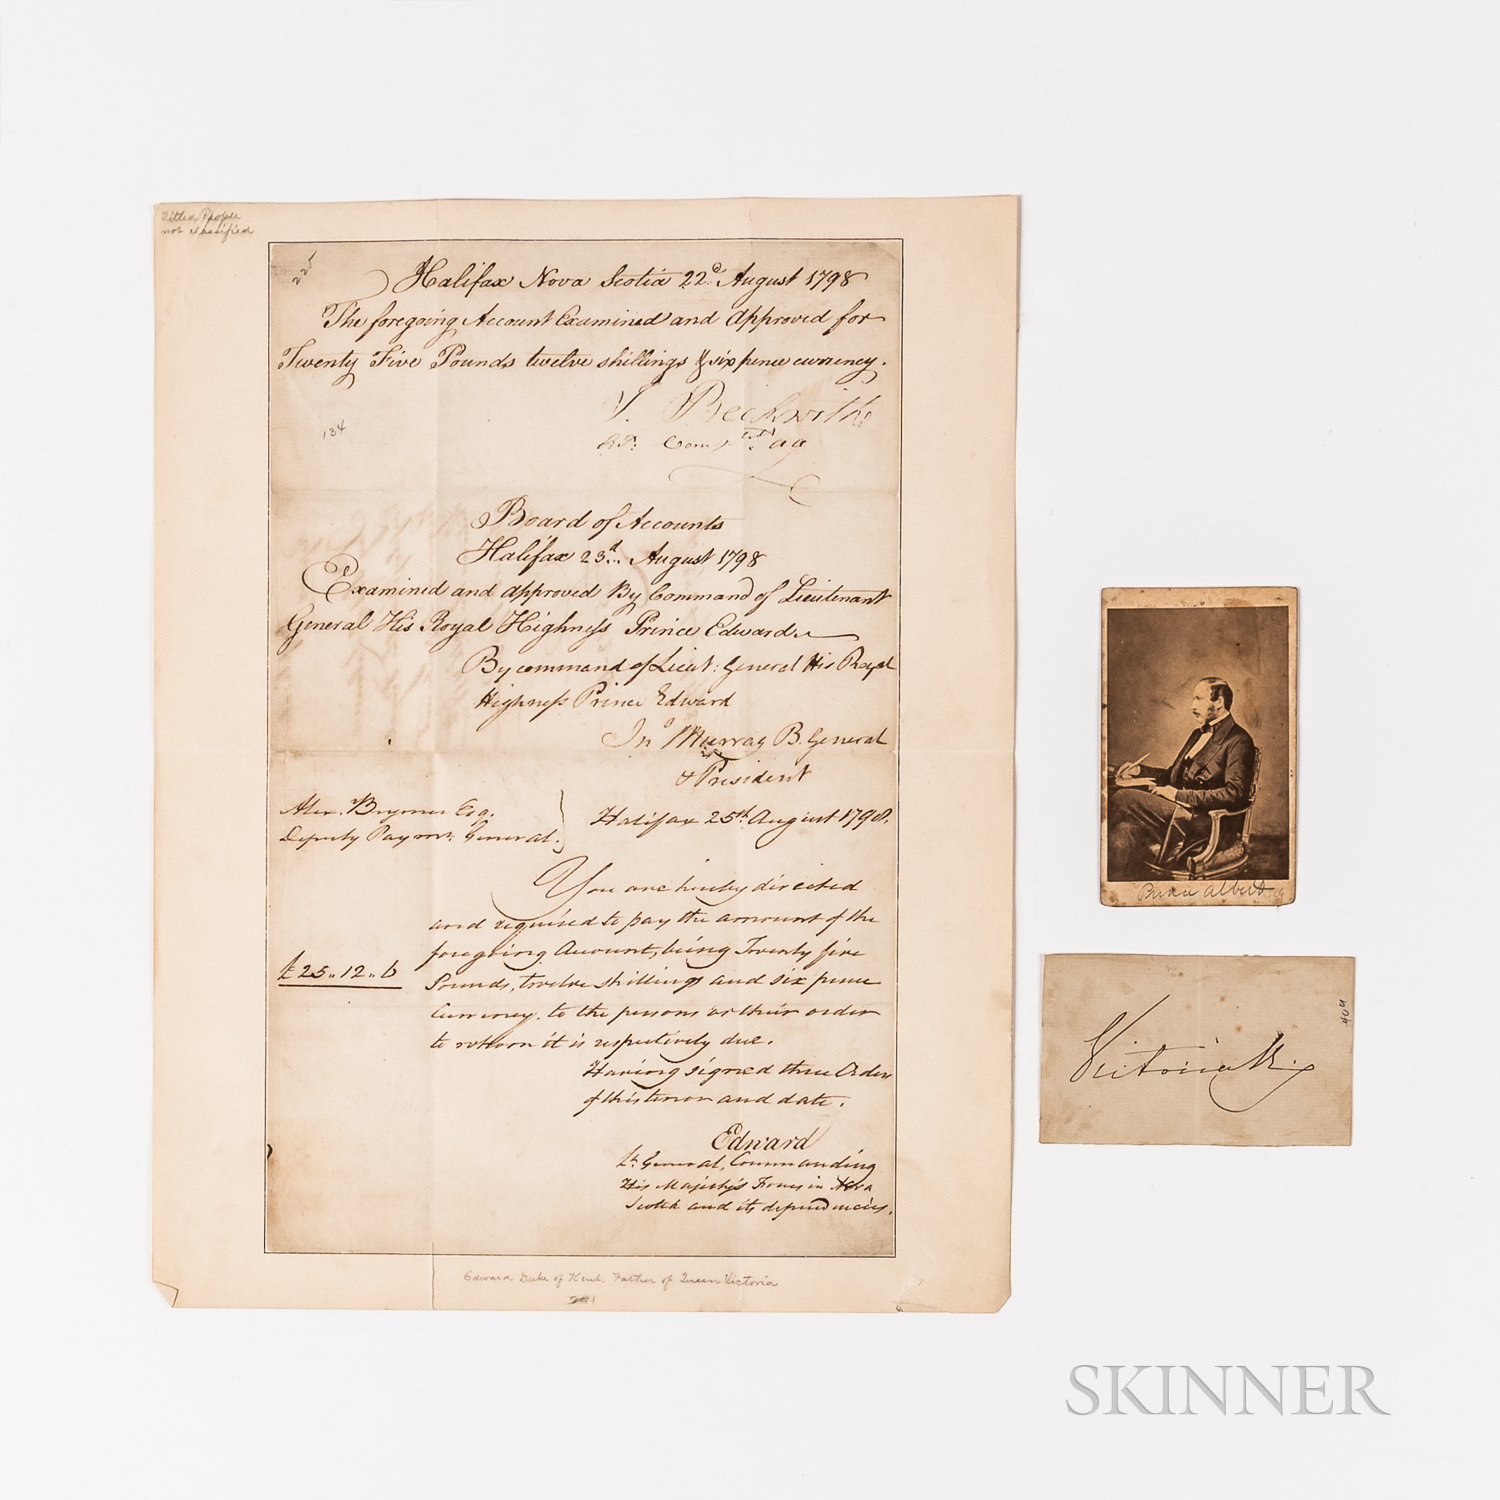 Queen Victoria (1819-1901), Prince Albert (1819-1861), and Prince Edward (1767-1820) Autographs/Photo/Document Signed.